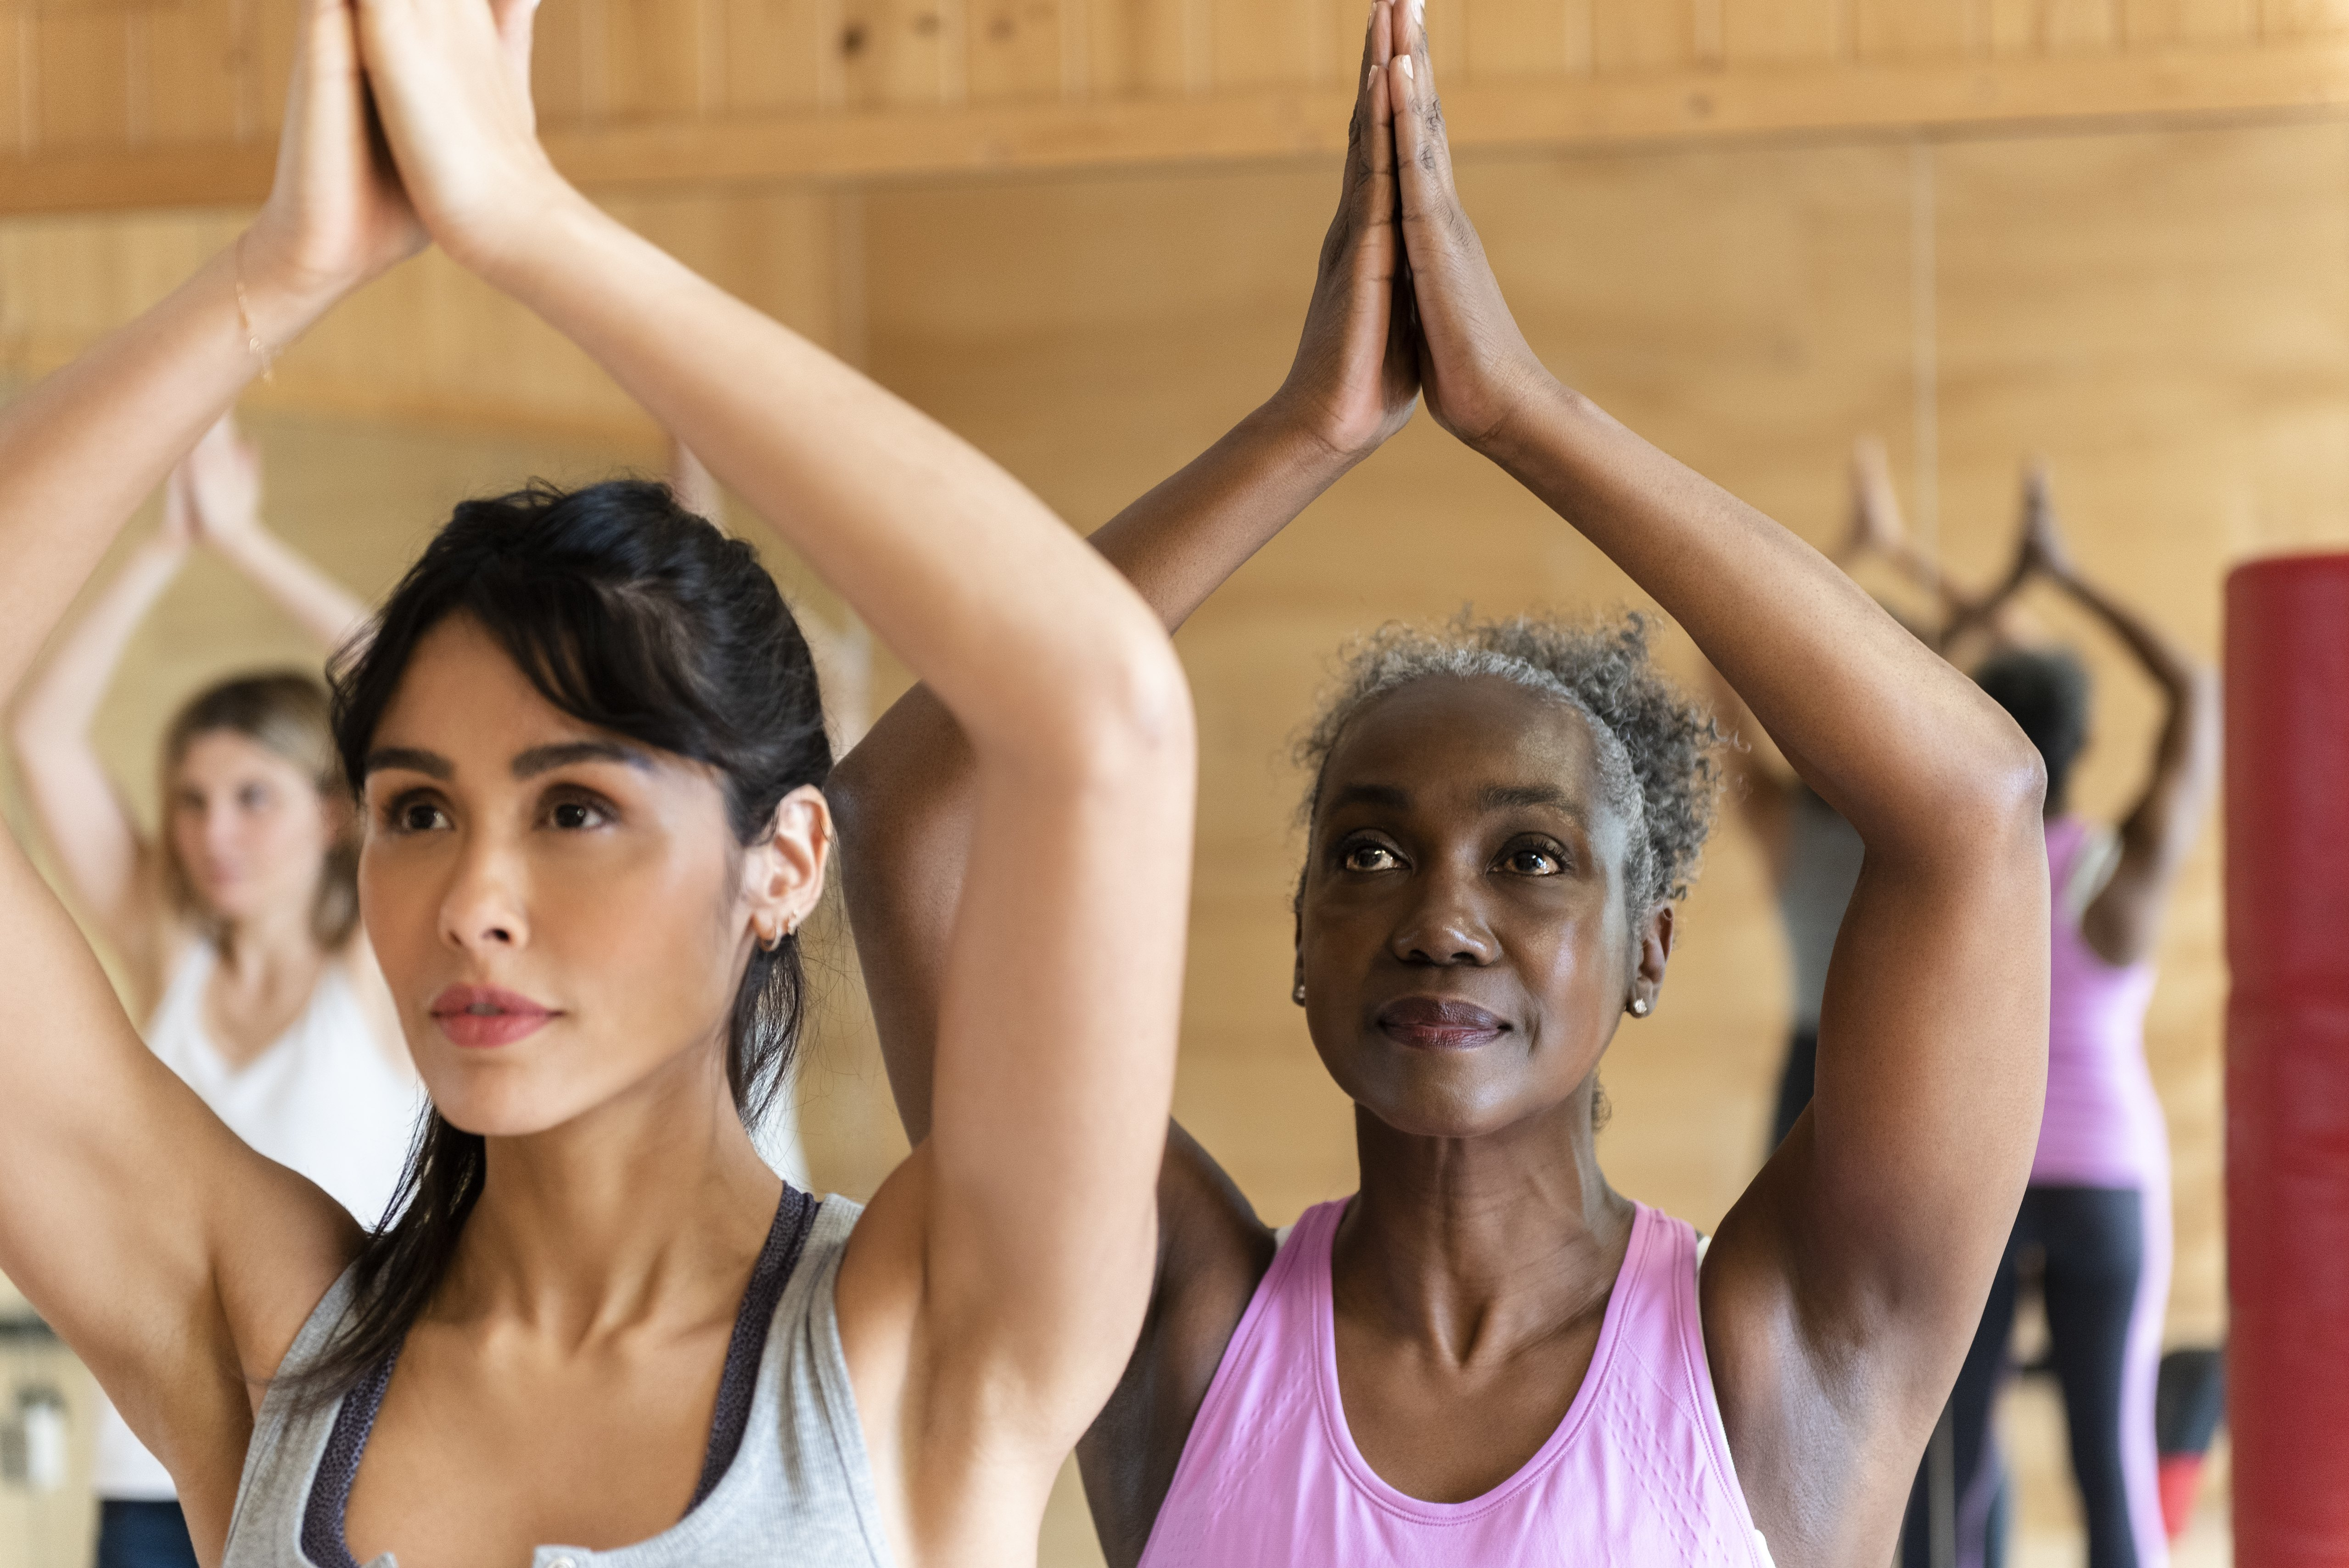 Exercise Can Reduce Stress, So Why Does It Spike Cortisol?